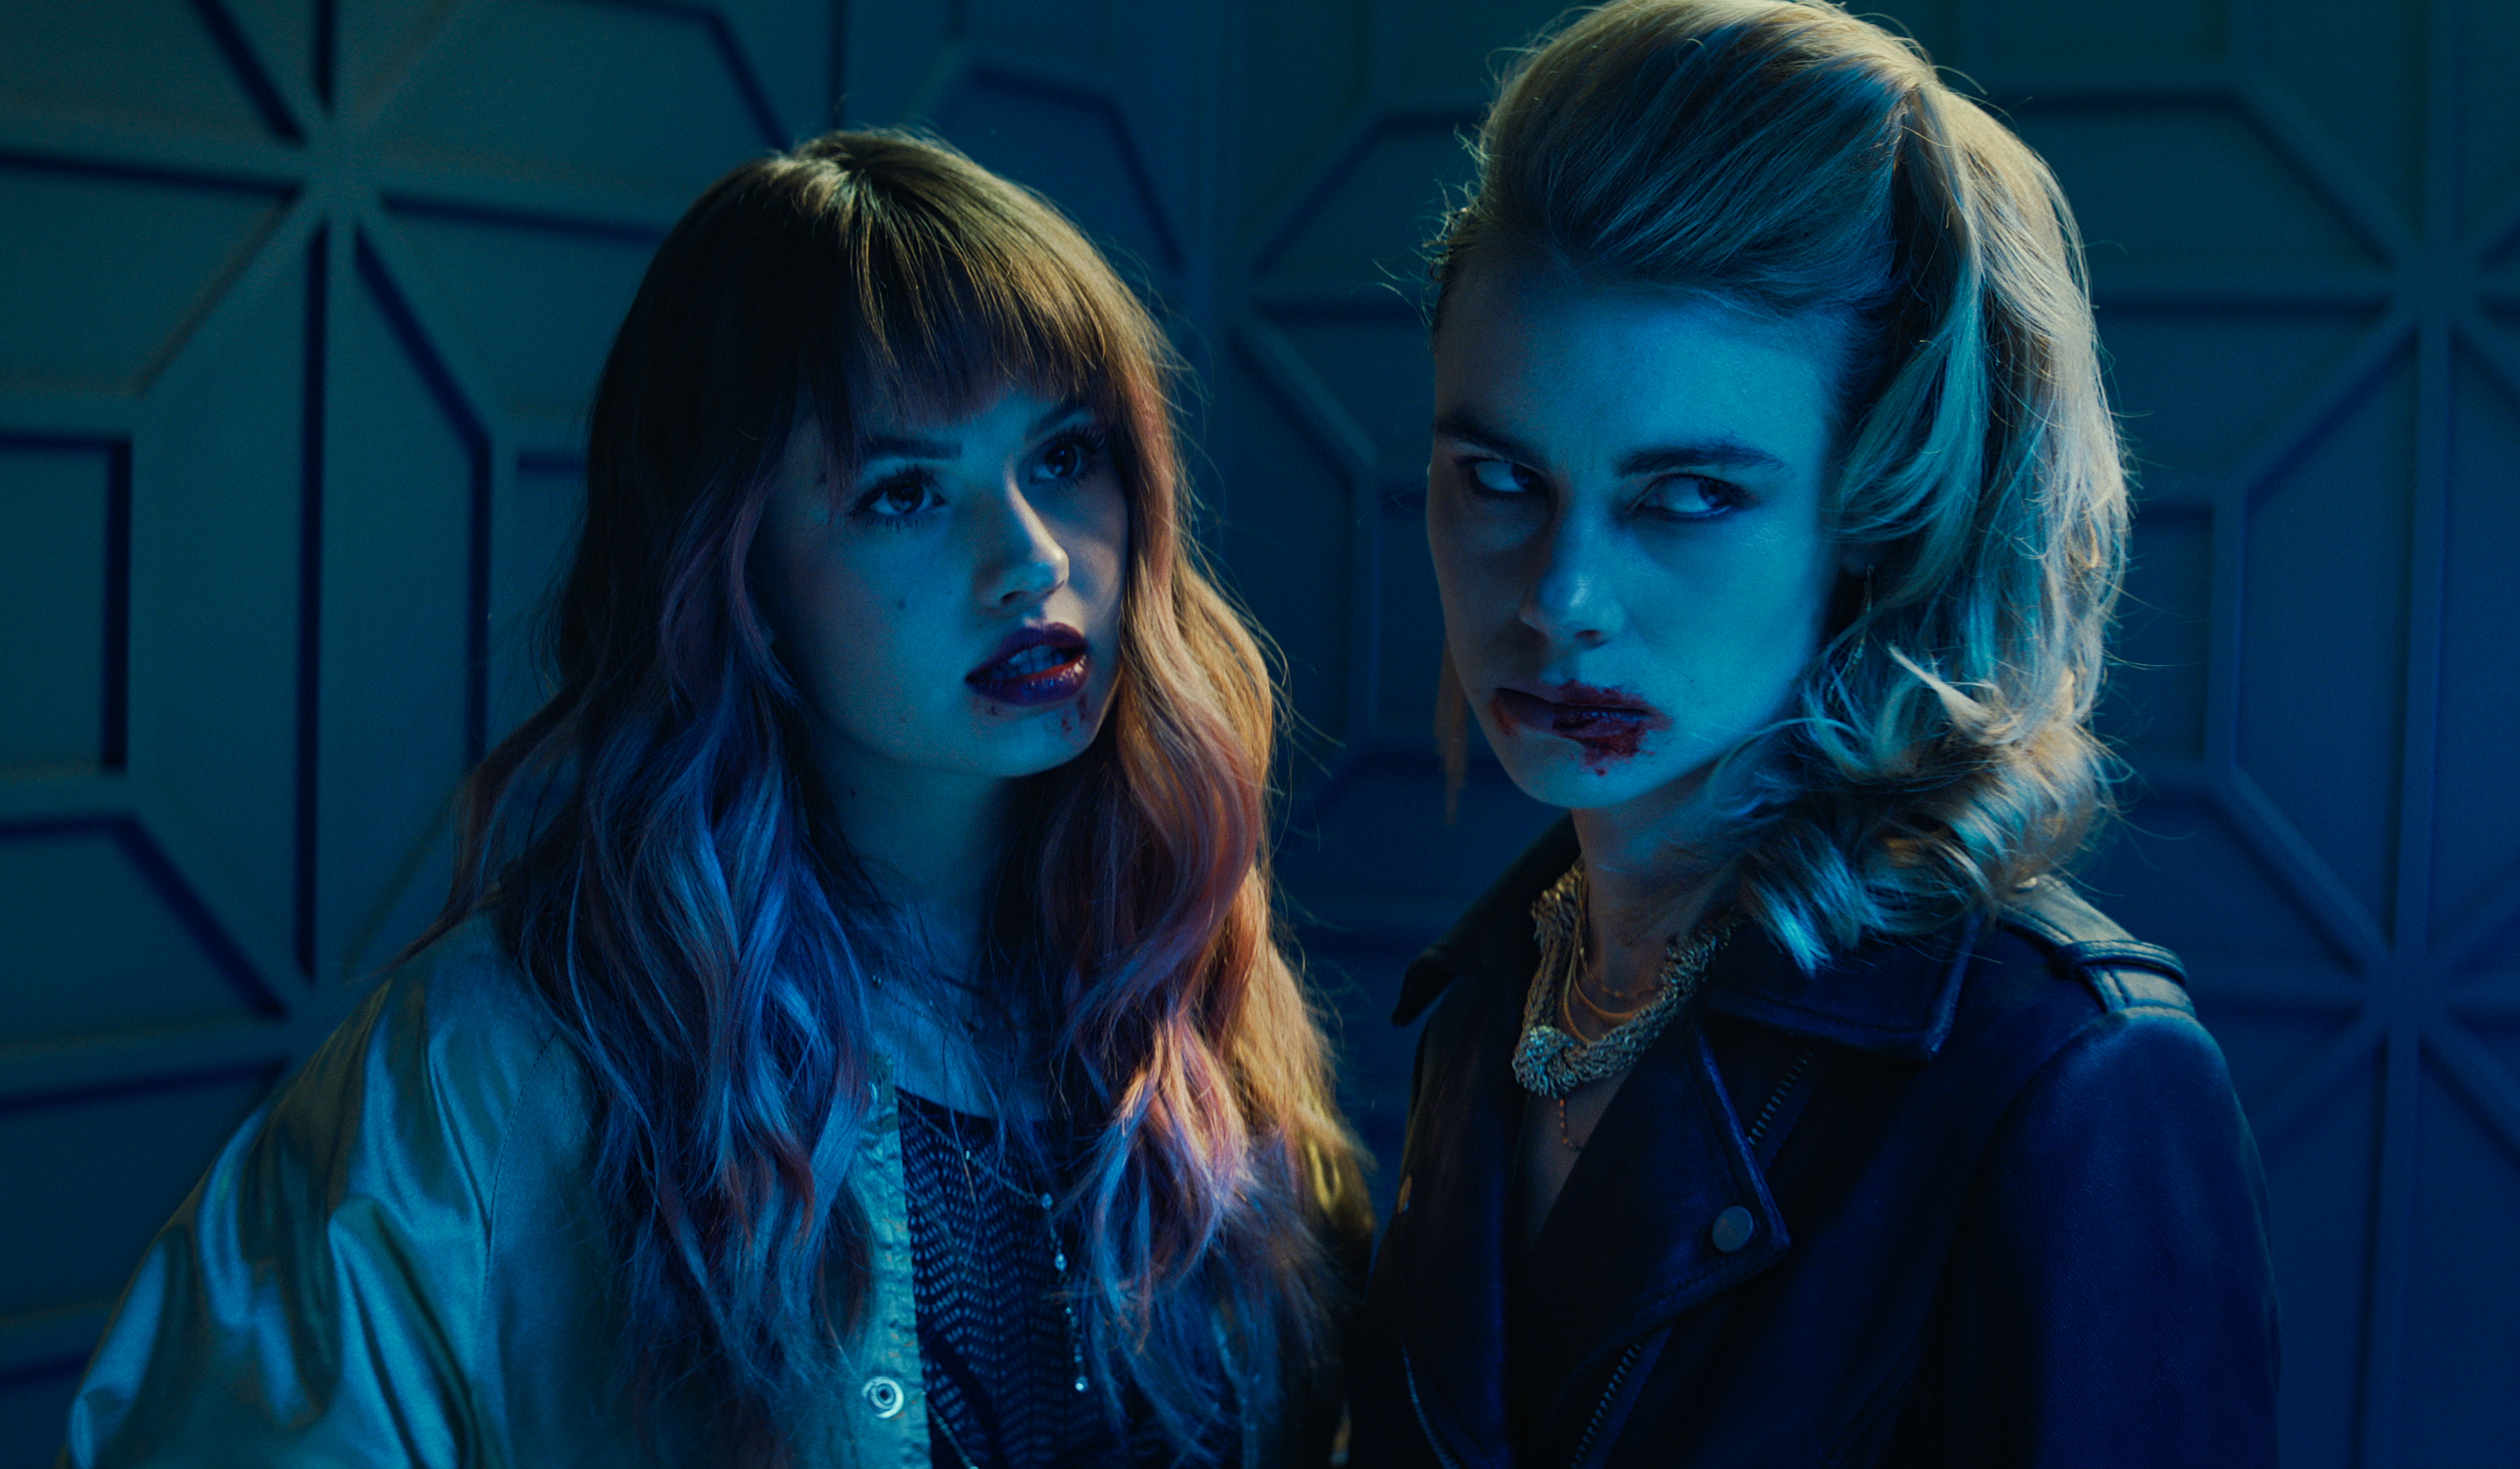 Two of Night Teeth's vampires, Blaire (Debby Ryan) and Zoe (Lucy Fry), stand together in a dimly lit room, with their mouths bloody